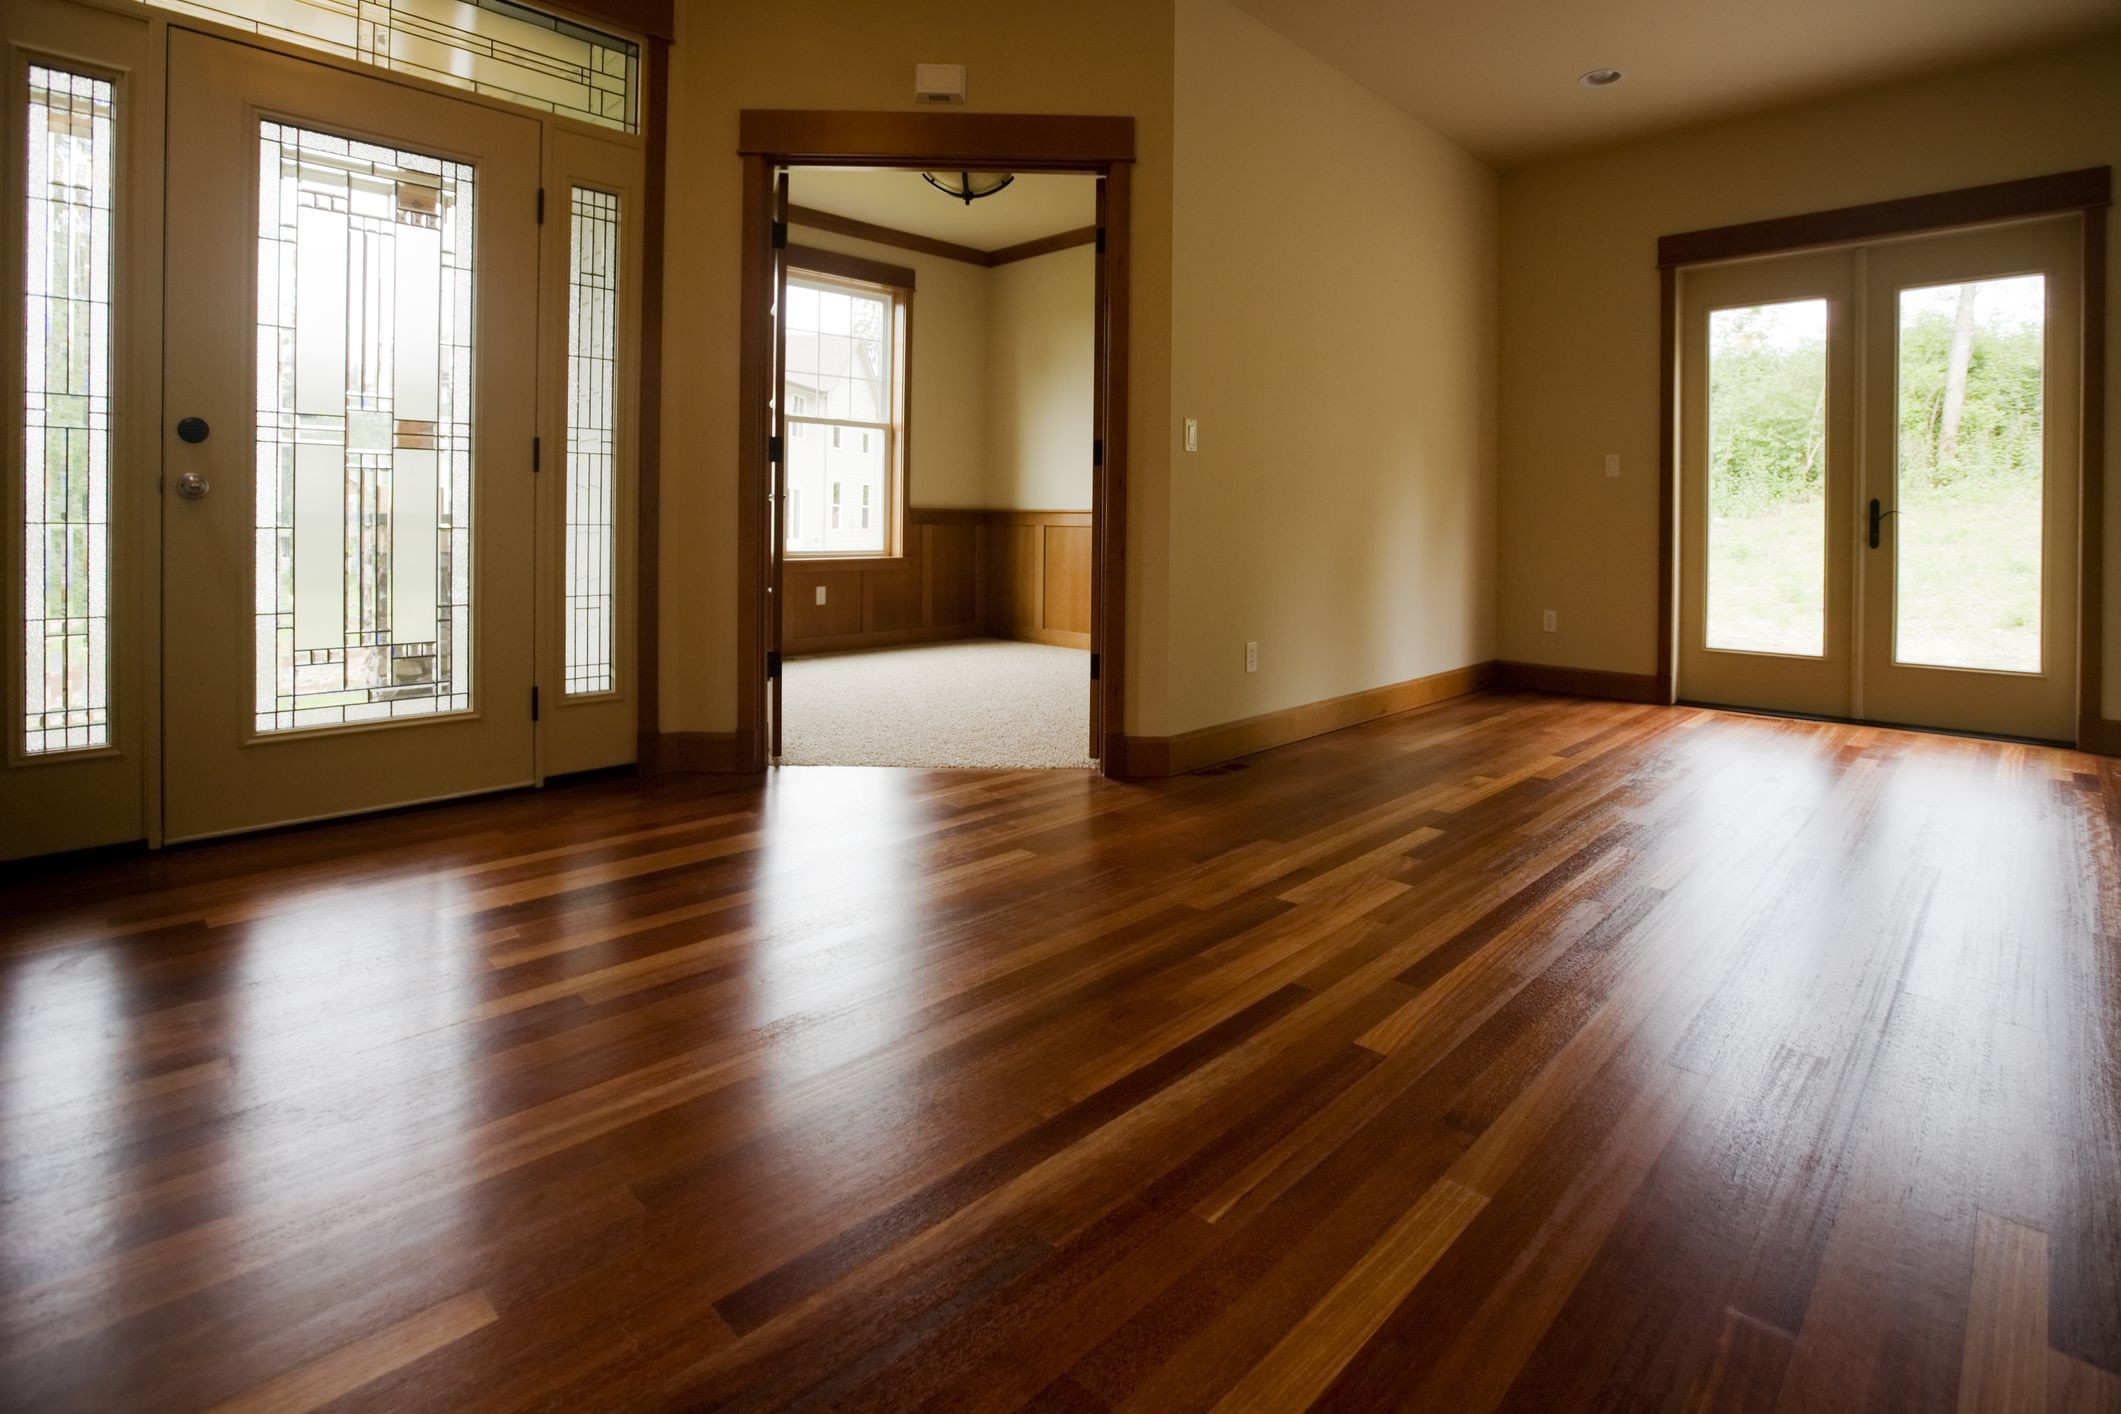 install hardwood floor 45 degree angle of types of hardwood flooring buyers guide intended for gettyimages 157332889 5886d8383df78c2ccd65d4e1